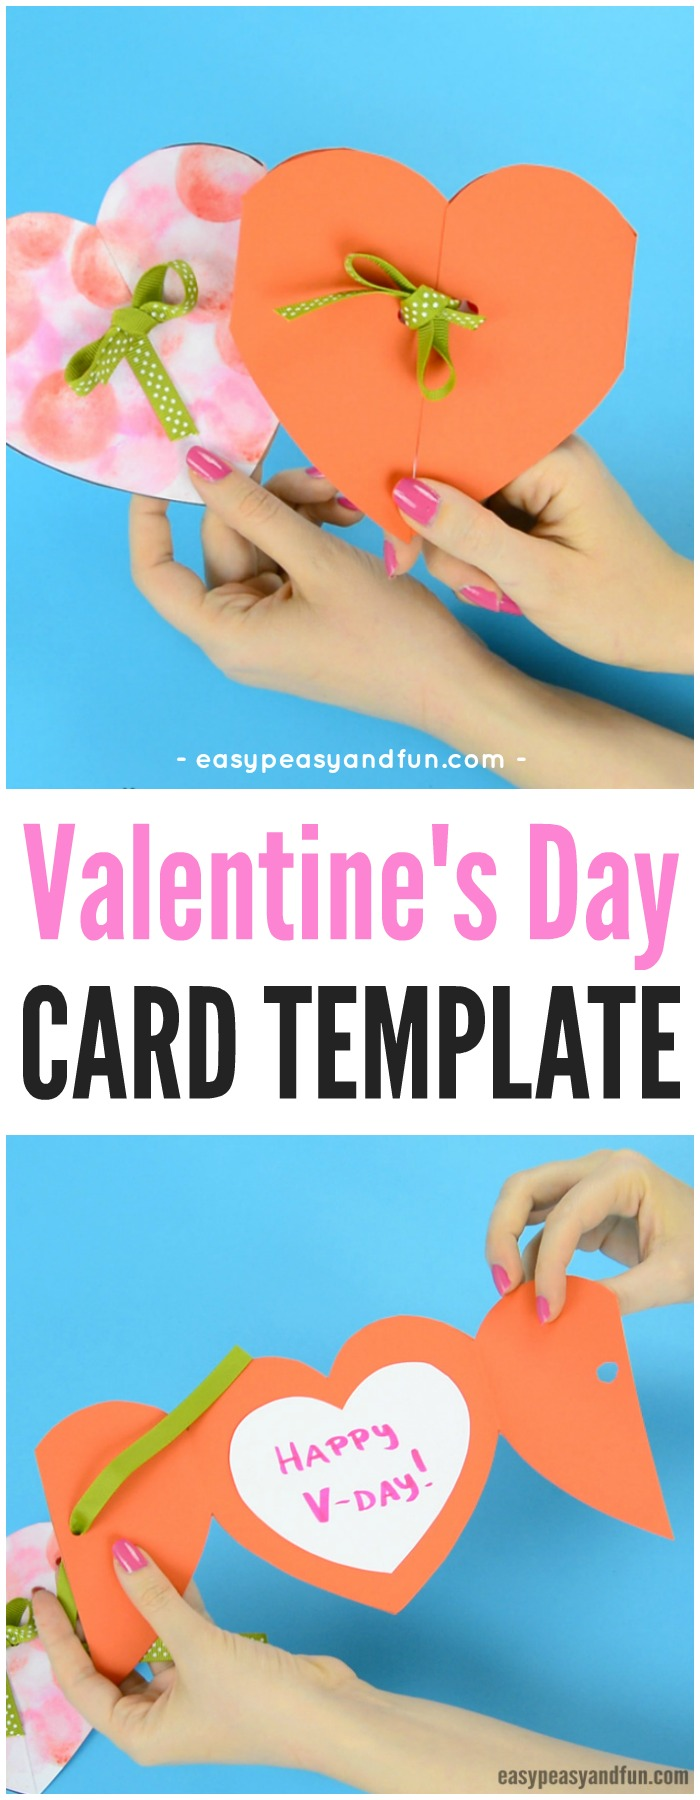 Valentine's Day Heart Card Craft with Template #craftsforkids #Valentinesdaycraftsforkids #heartcraftsforkids